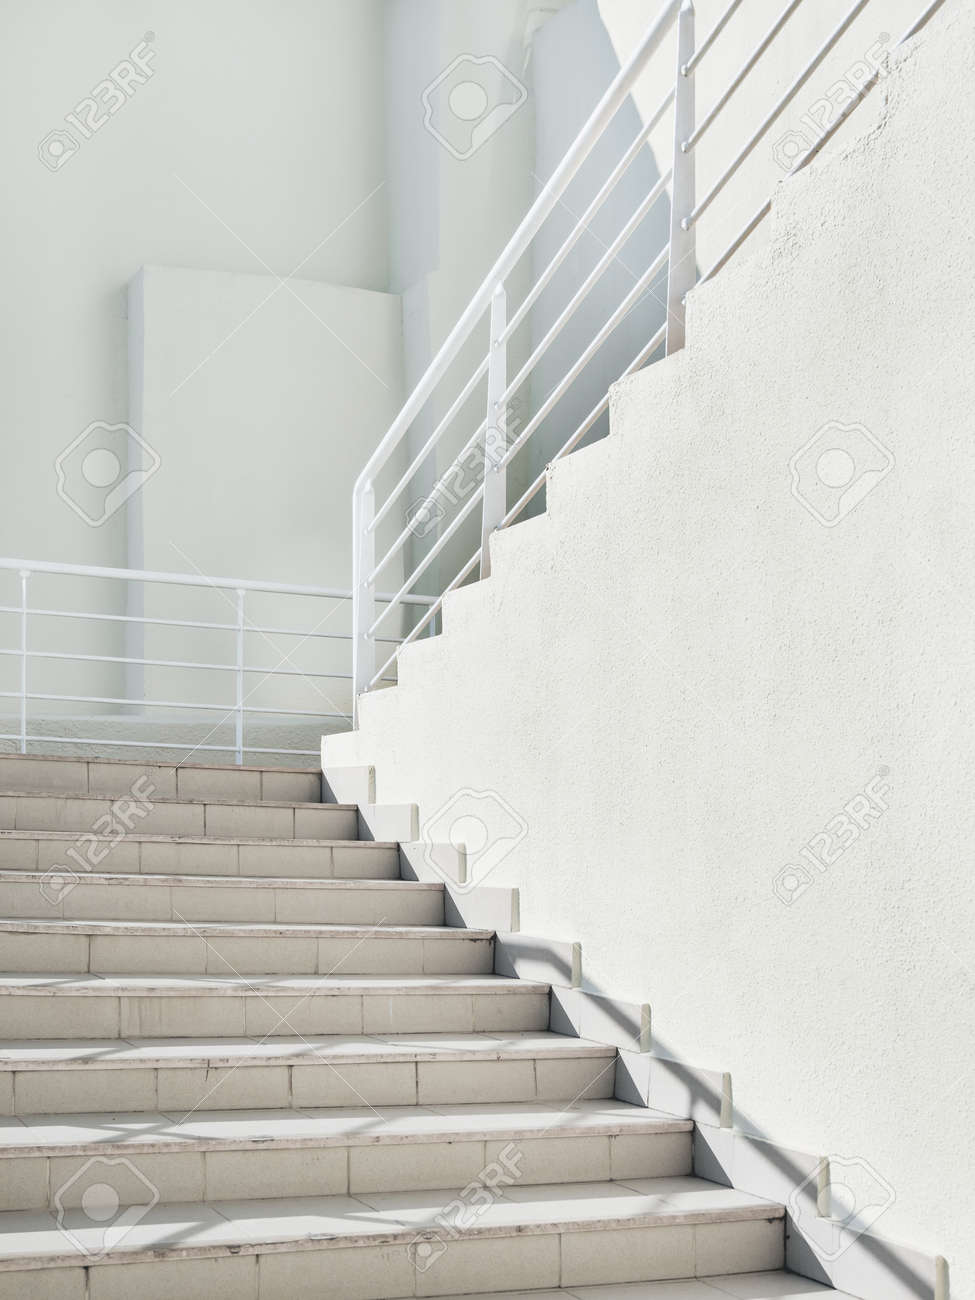 White exterior of outdoor staircase with railing. Sunlight and shadow on stone steps. Urban geometry. - 172806611